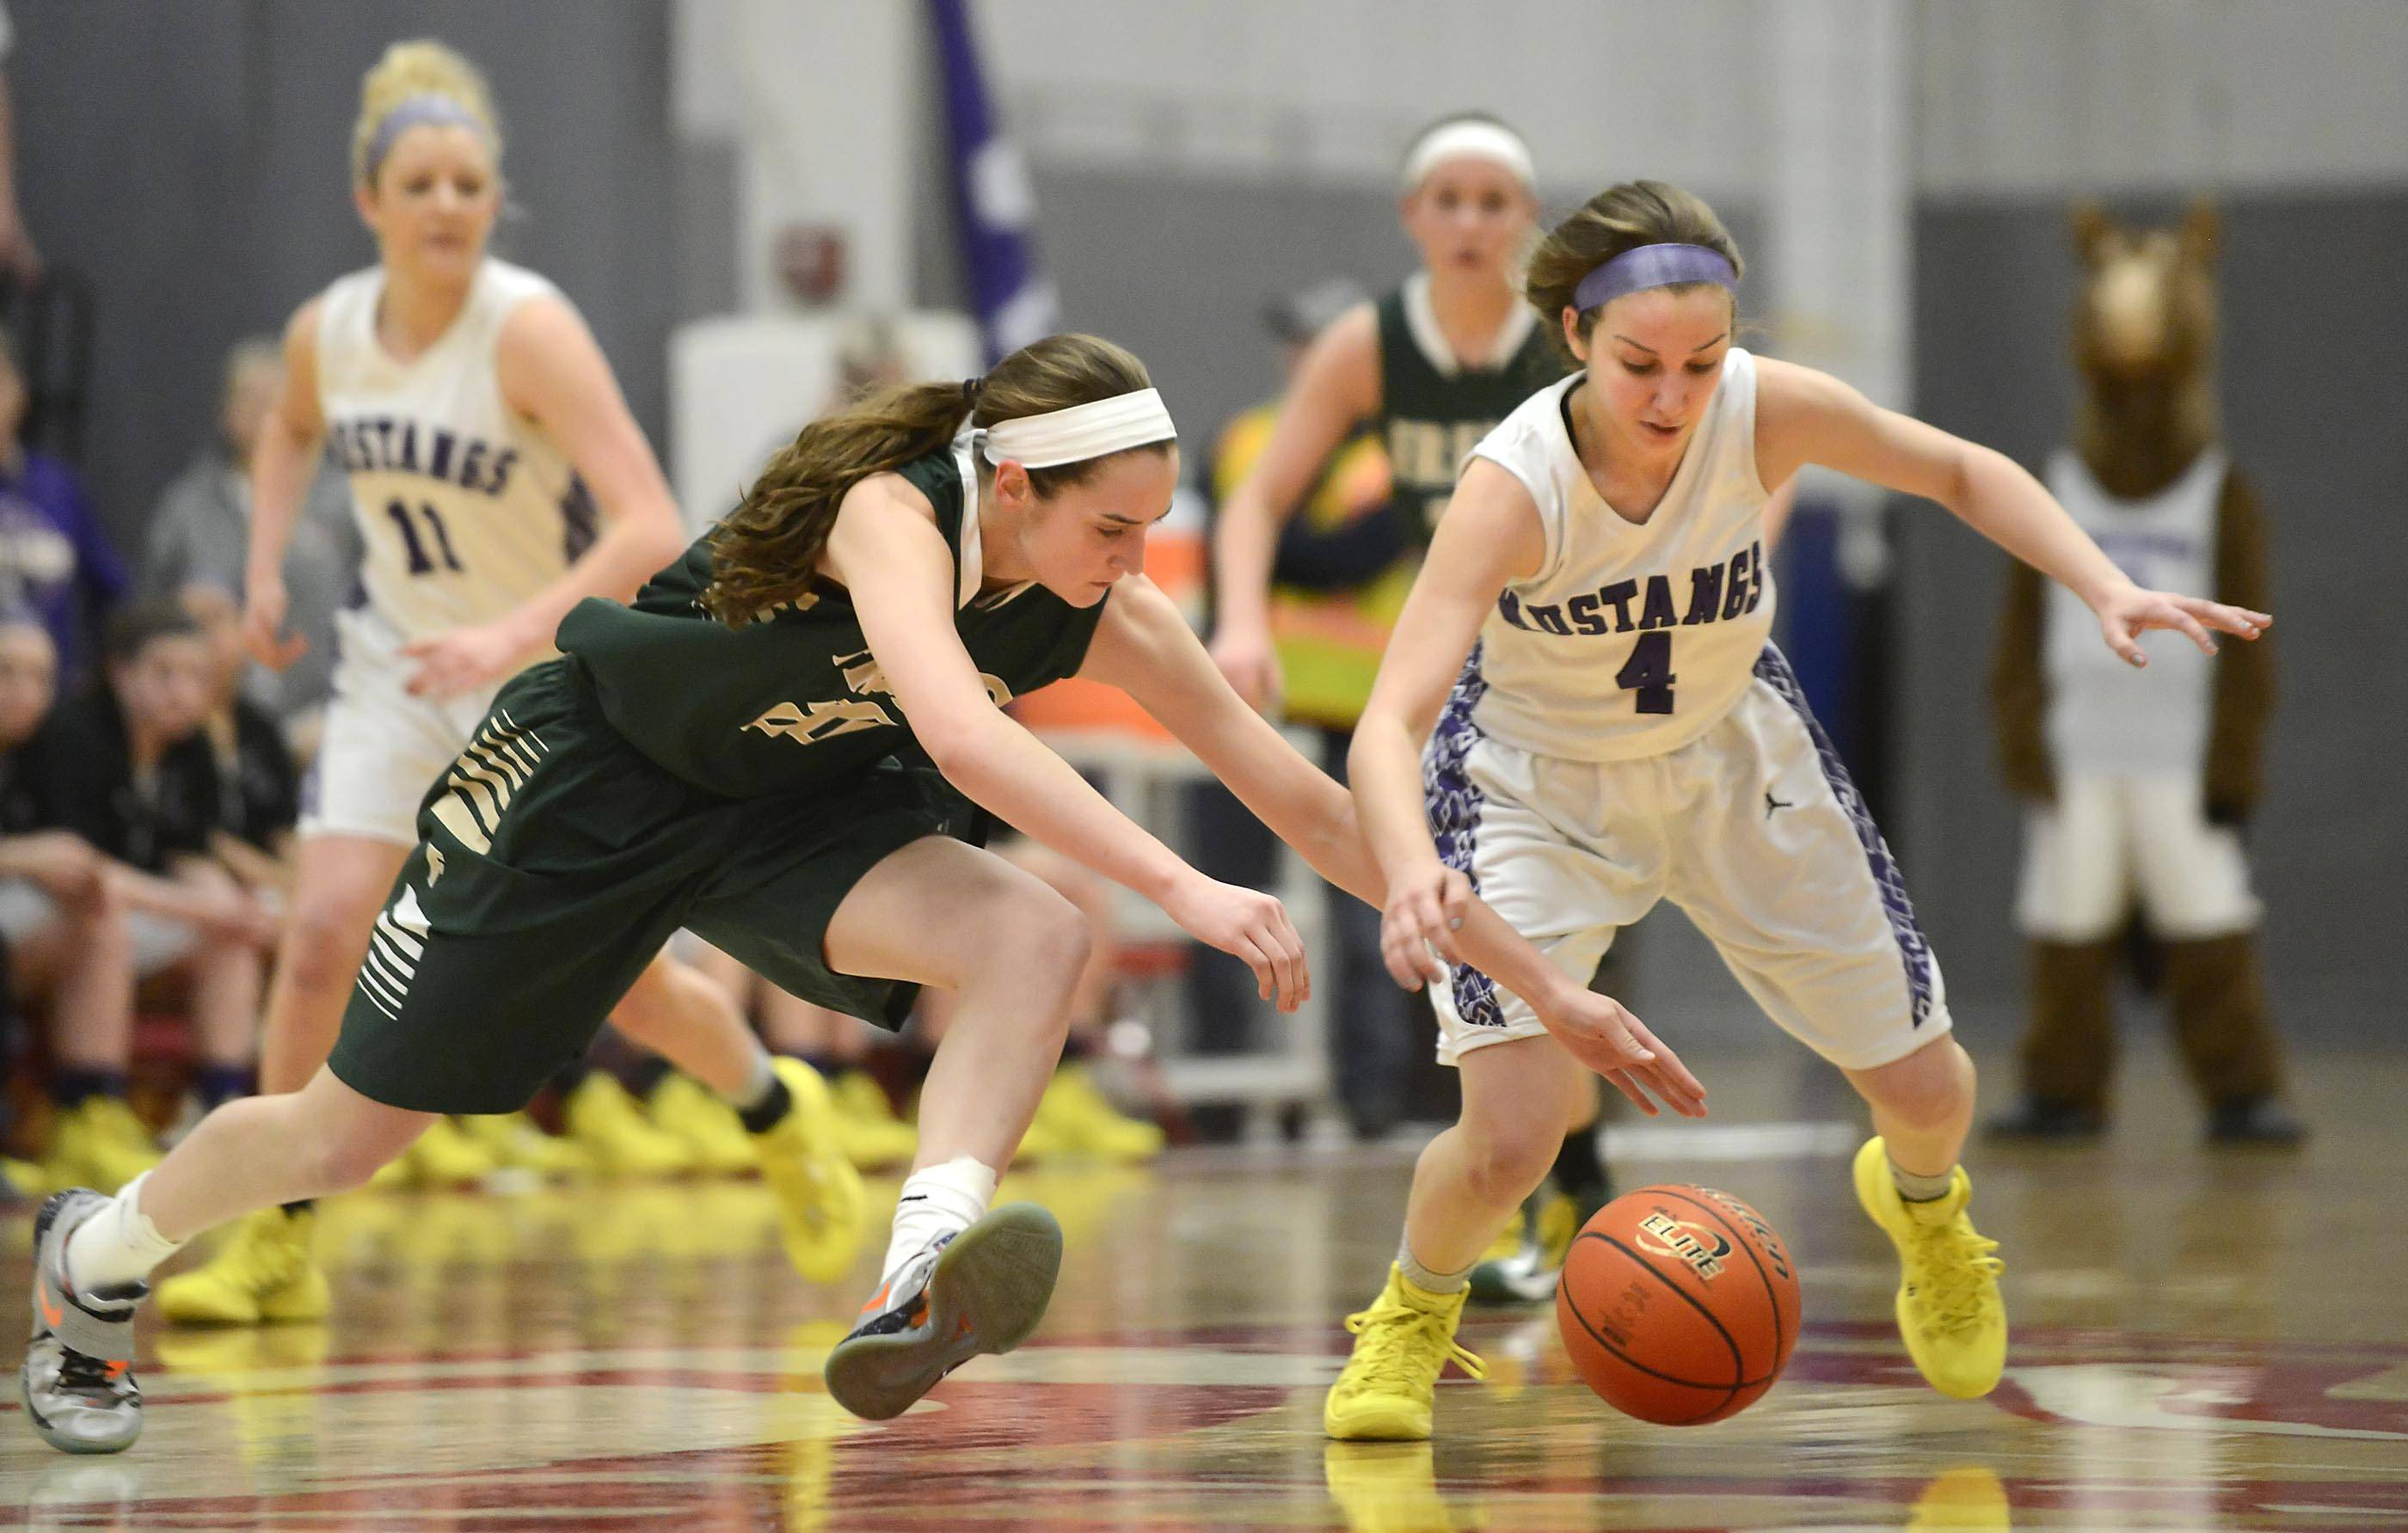 Fremd's Haley Gorecki and Rolling Meadows' Sami Kay charge for the ball after Gorecki knocked it loose Thursday in the Barrington Class 4A sectional championship game. Rolling Meadows meets New Trier at 8 p.m. Monday in supersectional play at Hoffman Estates with a final four berth at stake.